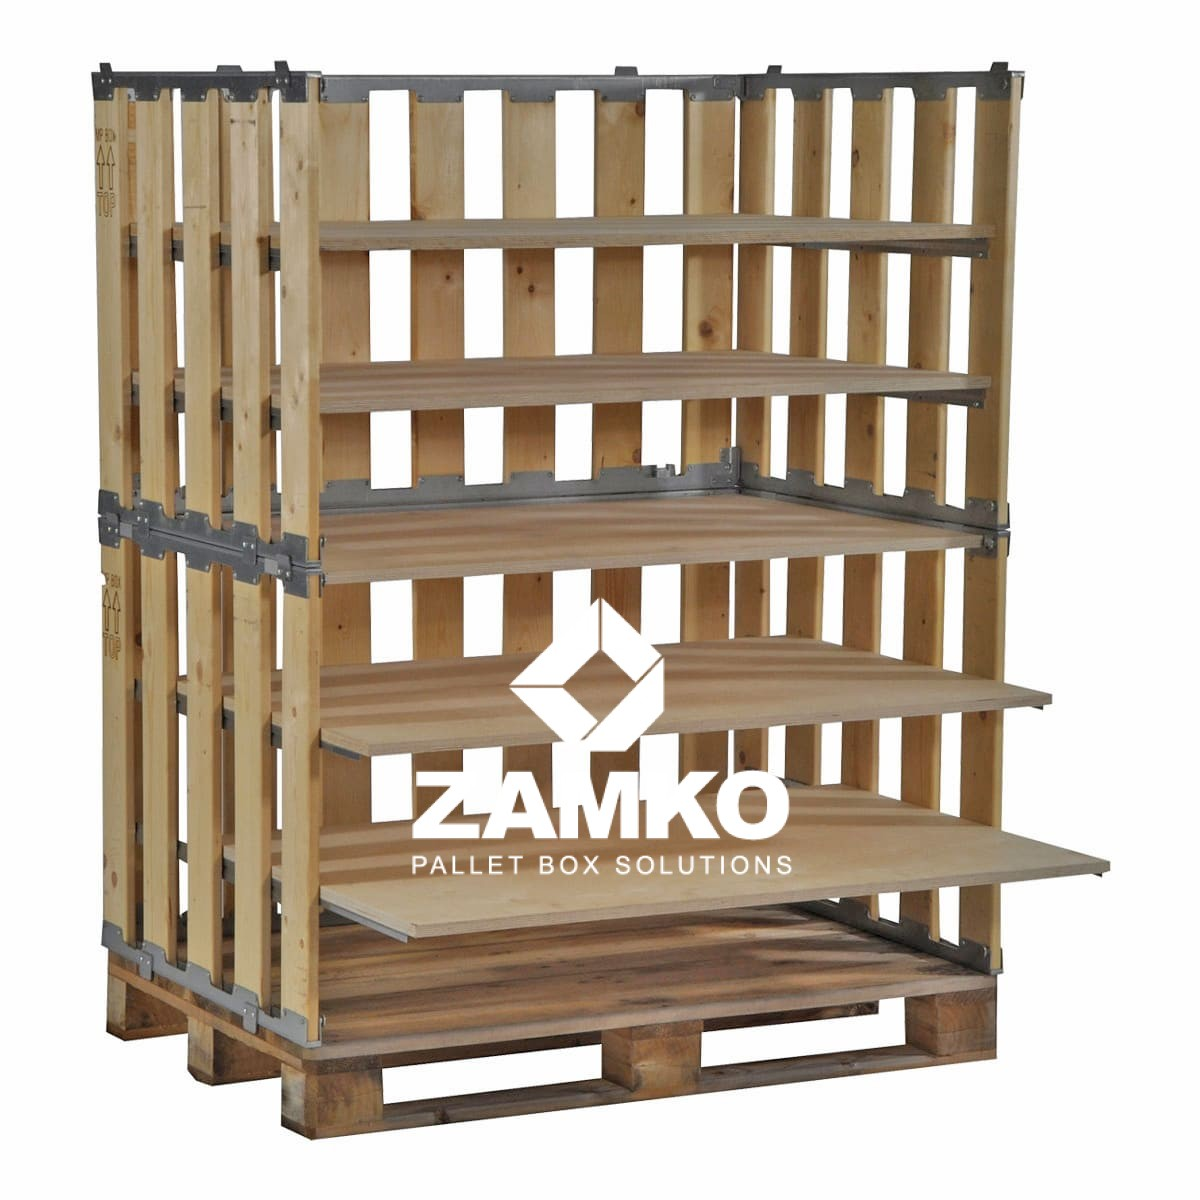 Pallet Box 8 Detachable Walls 800mm 800mm High With Shelves